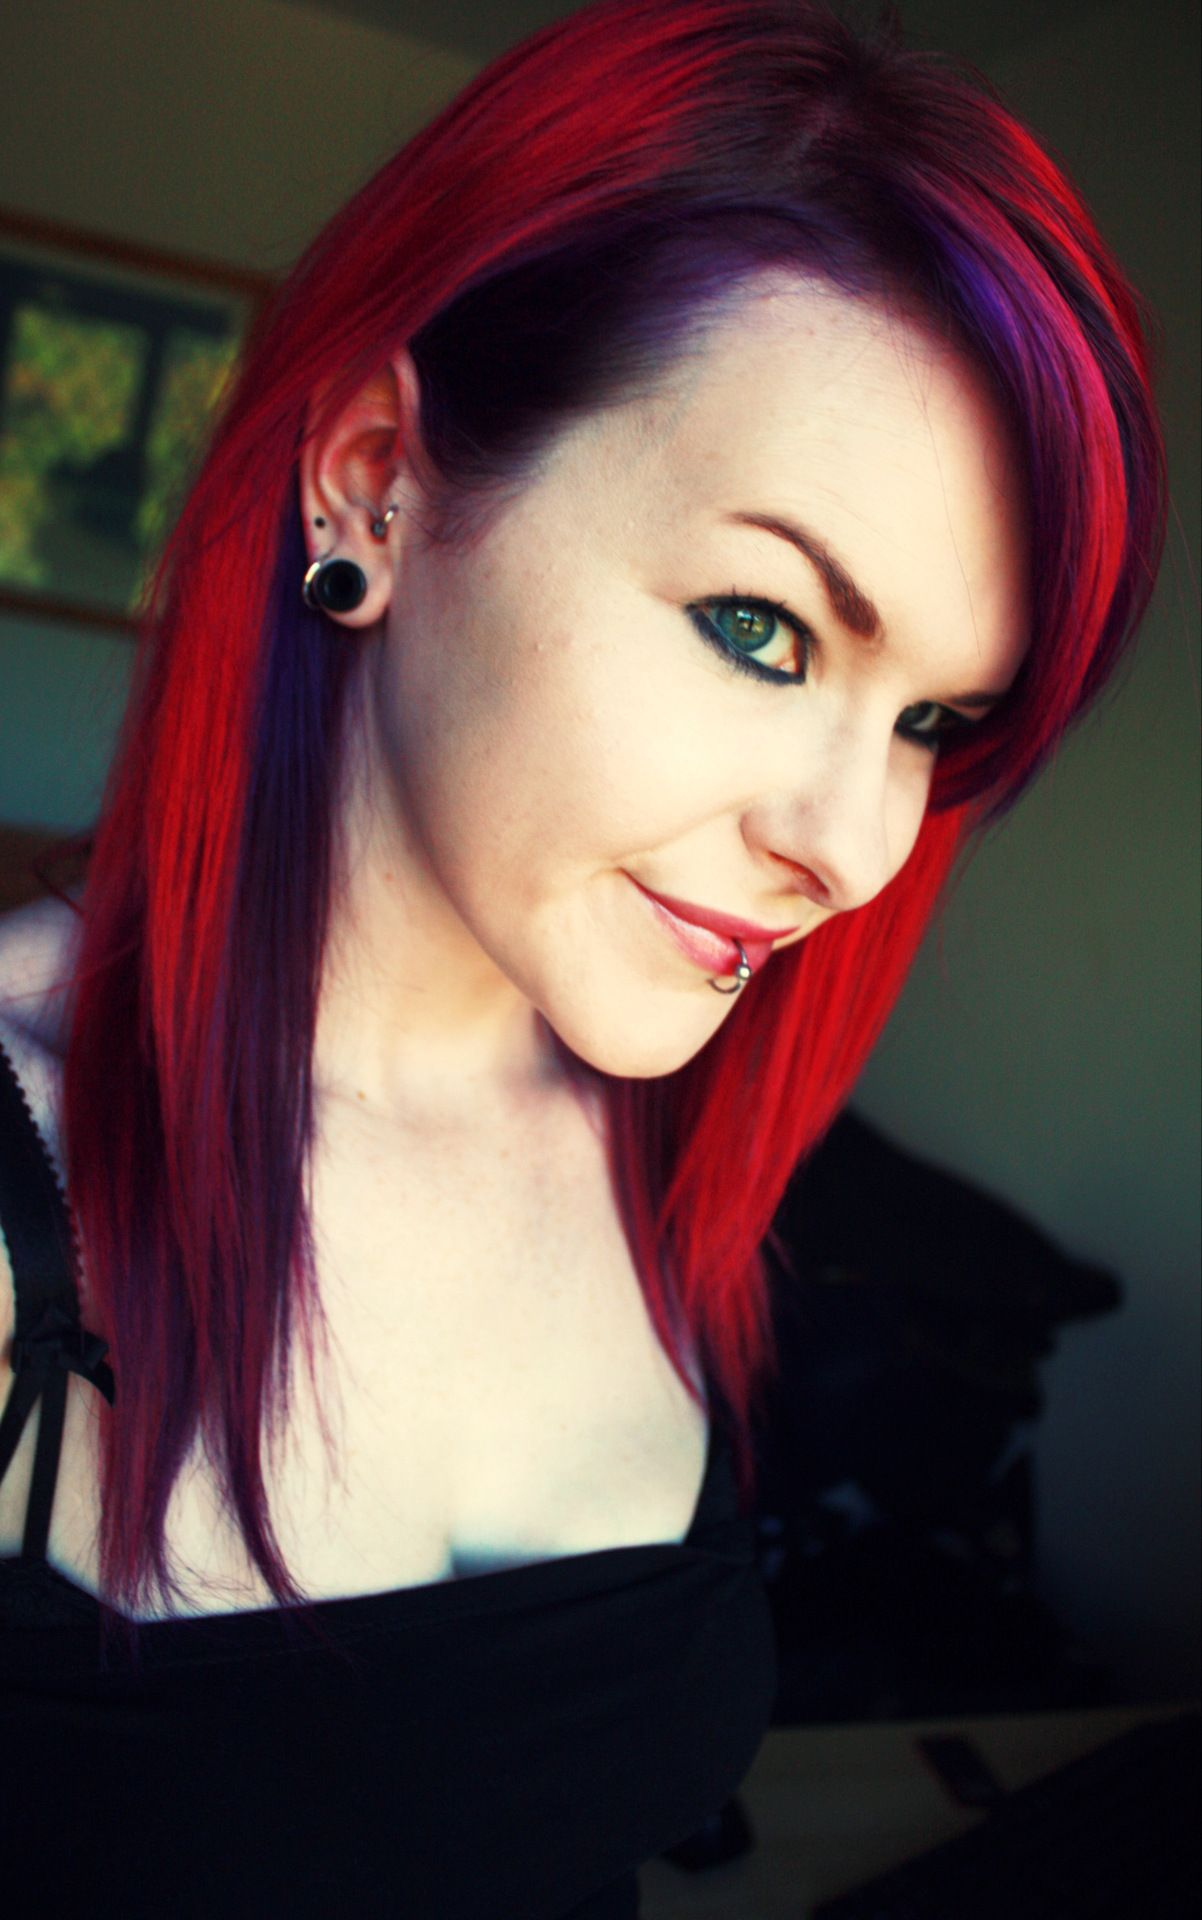 Red on top, purple underneath via: Not Your Typical Hair Blog ...